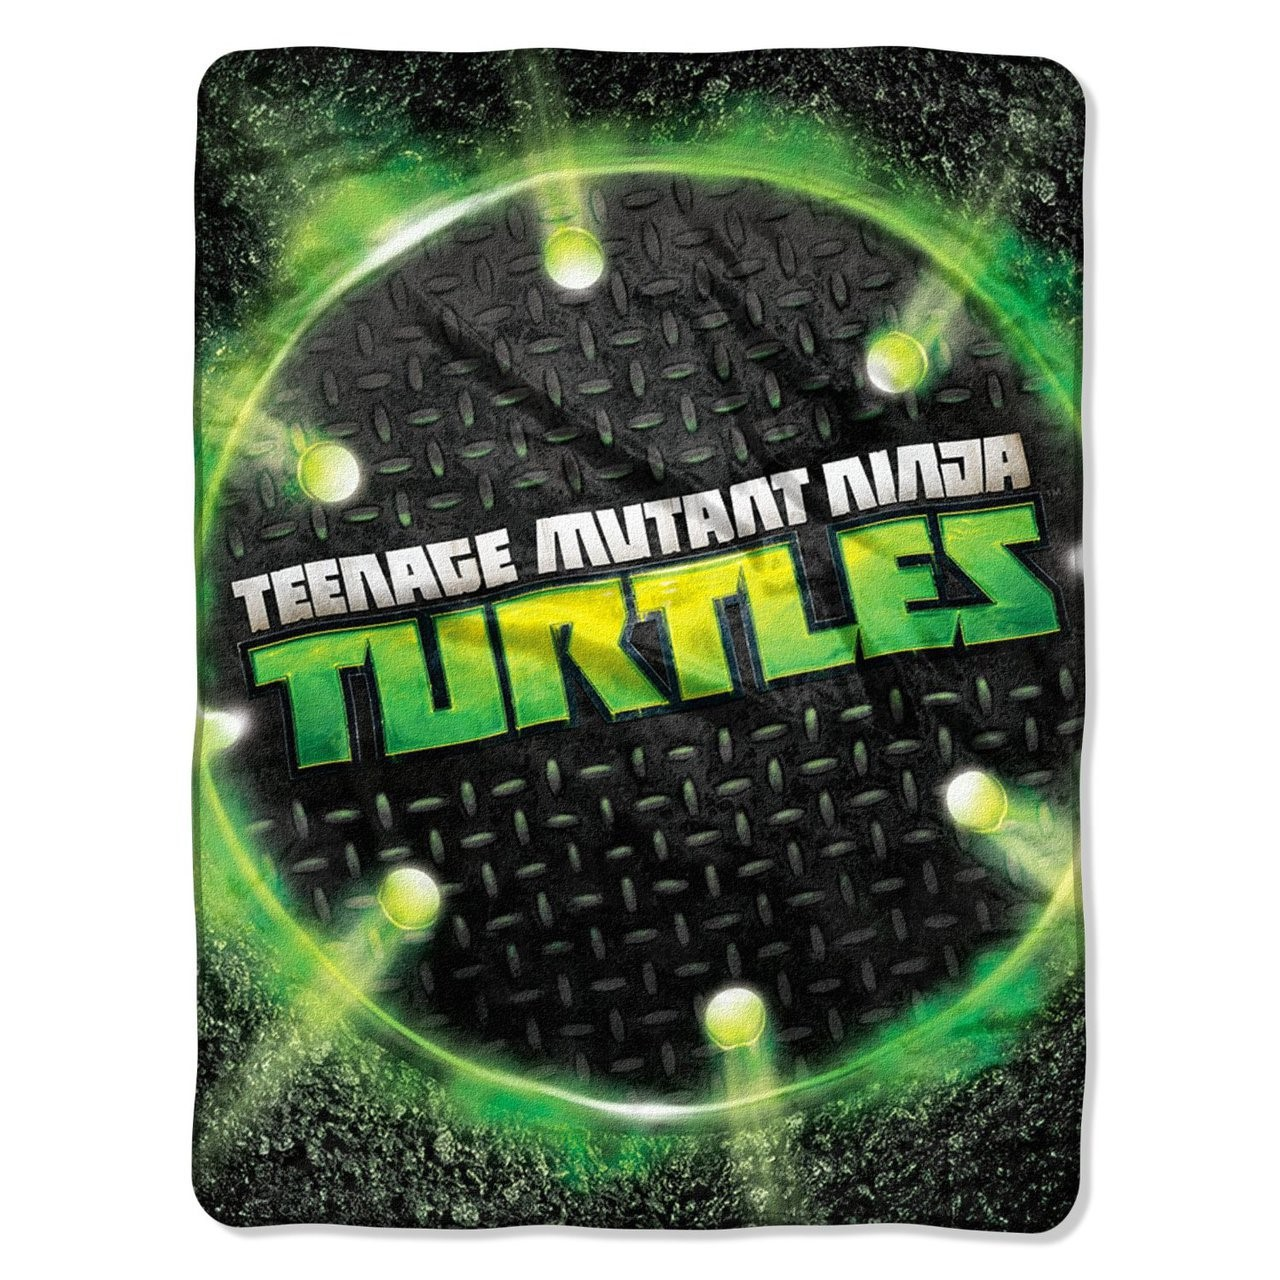 "Teenage Mutant Ninja Turtles Super Plush Fleece Throw - 46"" by 60"""